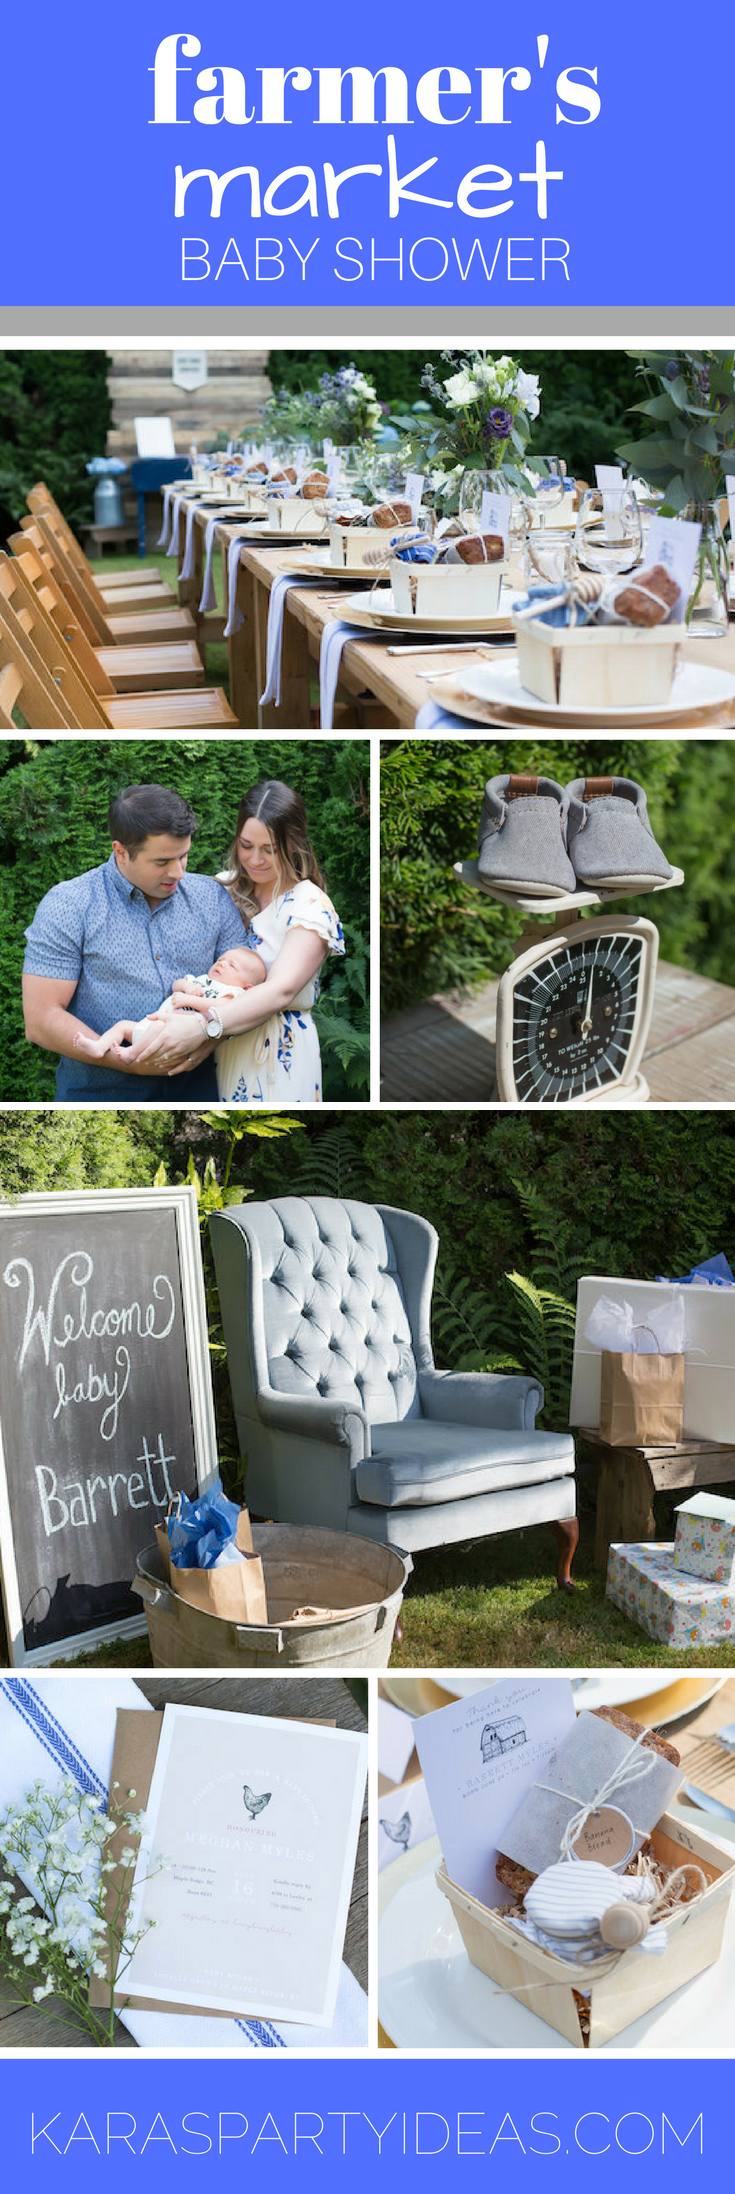 Merveilleux Farmeru0027s Market Baby Shower Via Karau0027s Party Ideas